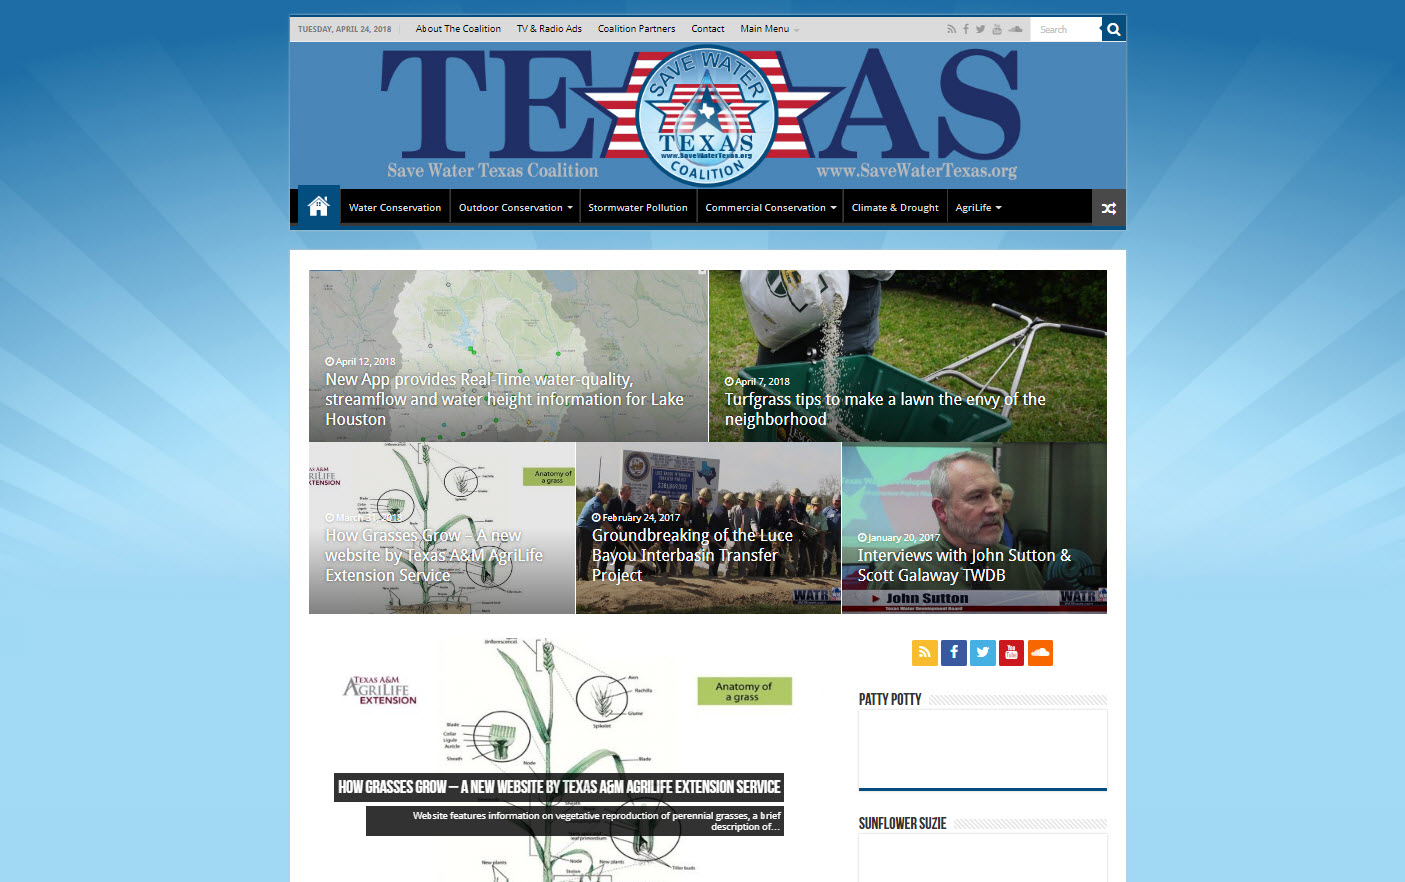 Save Water Texas Coalition (SWTC)